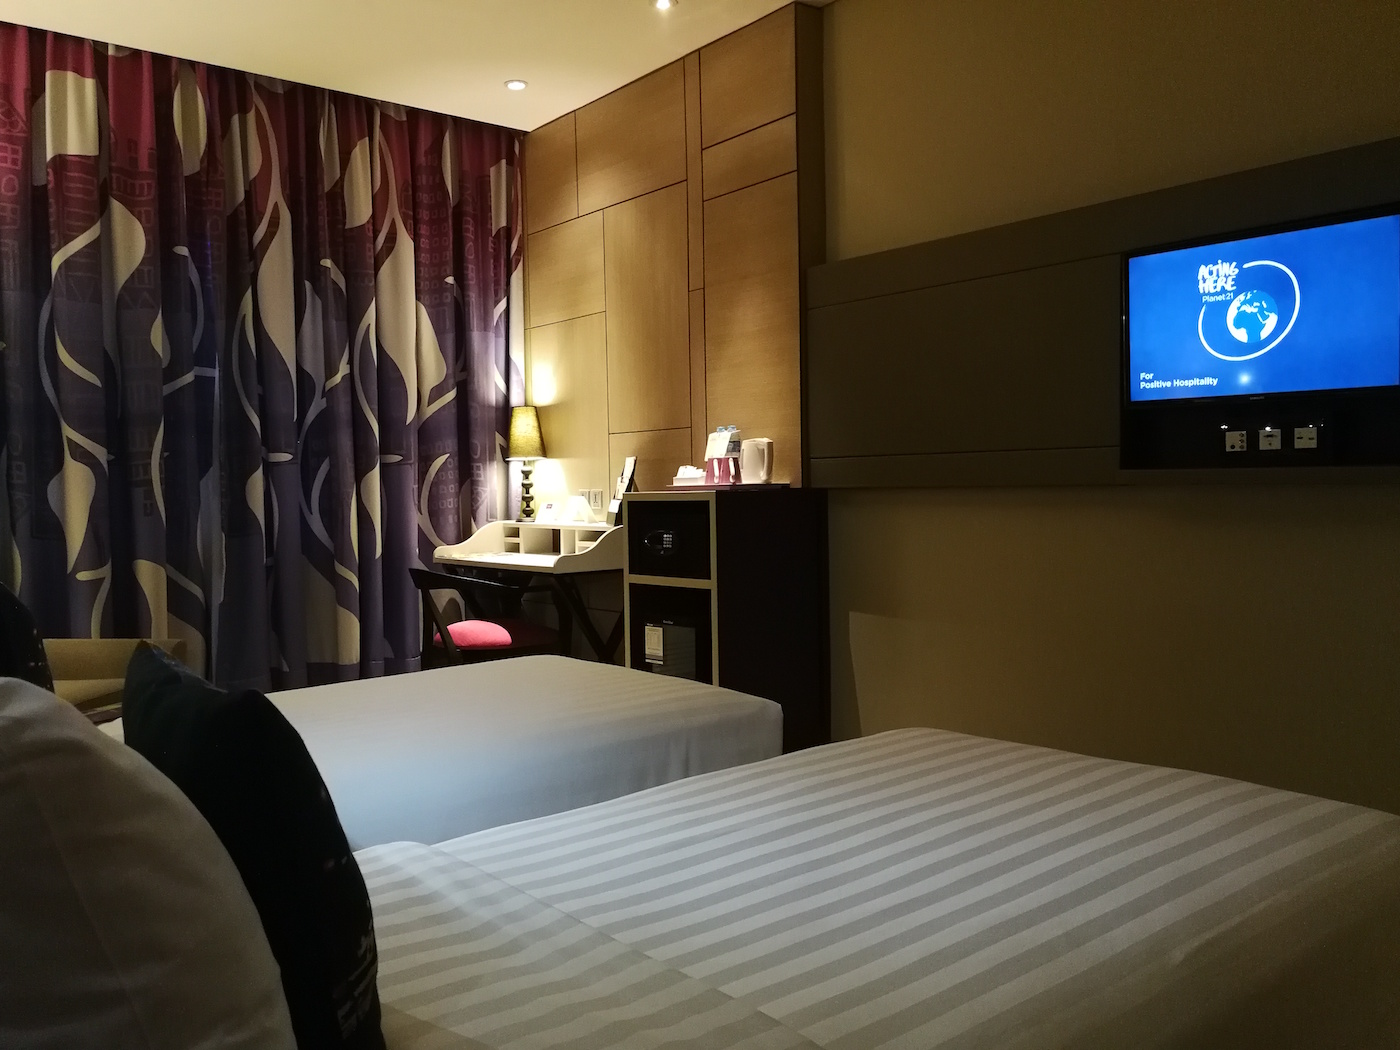 Mercure Jakarta Sabang Deluxe Room with Twin Beds 2